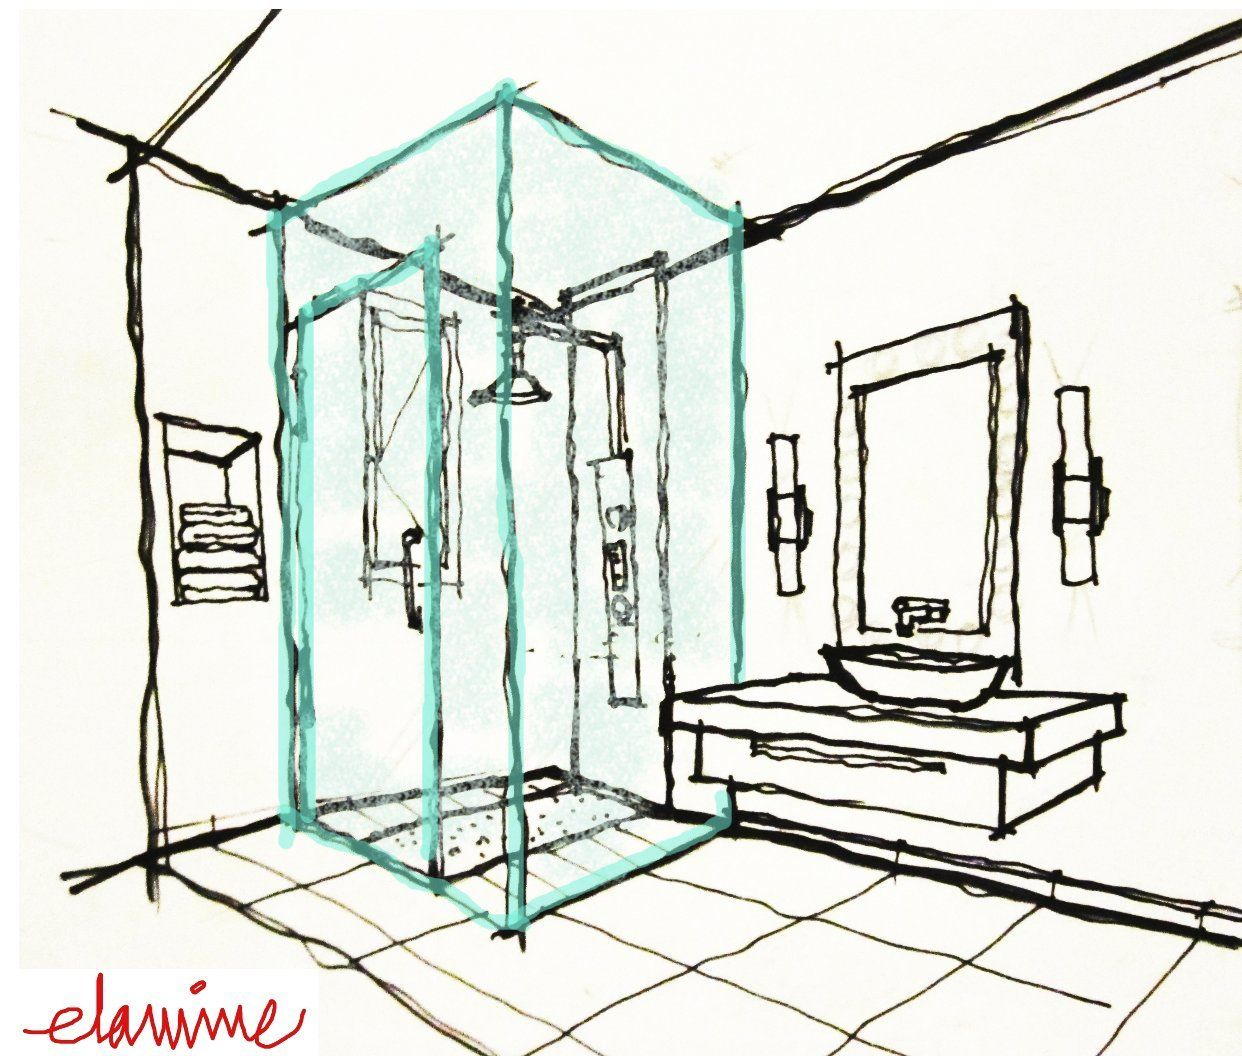 Bathroom drawing design - Bathroom Plans Sketches Google Search